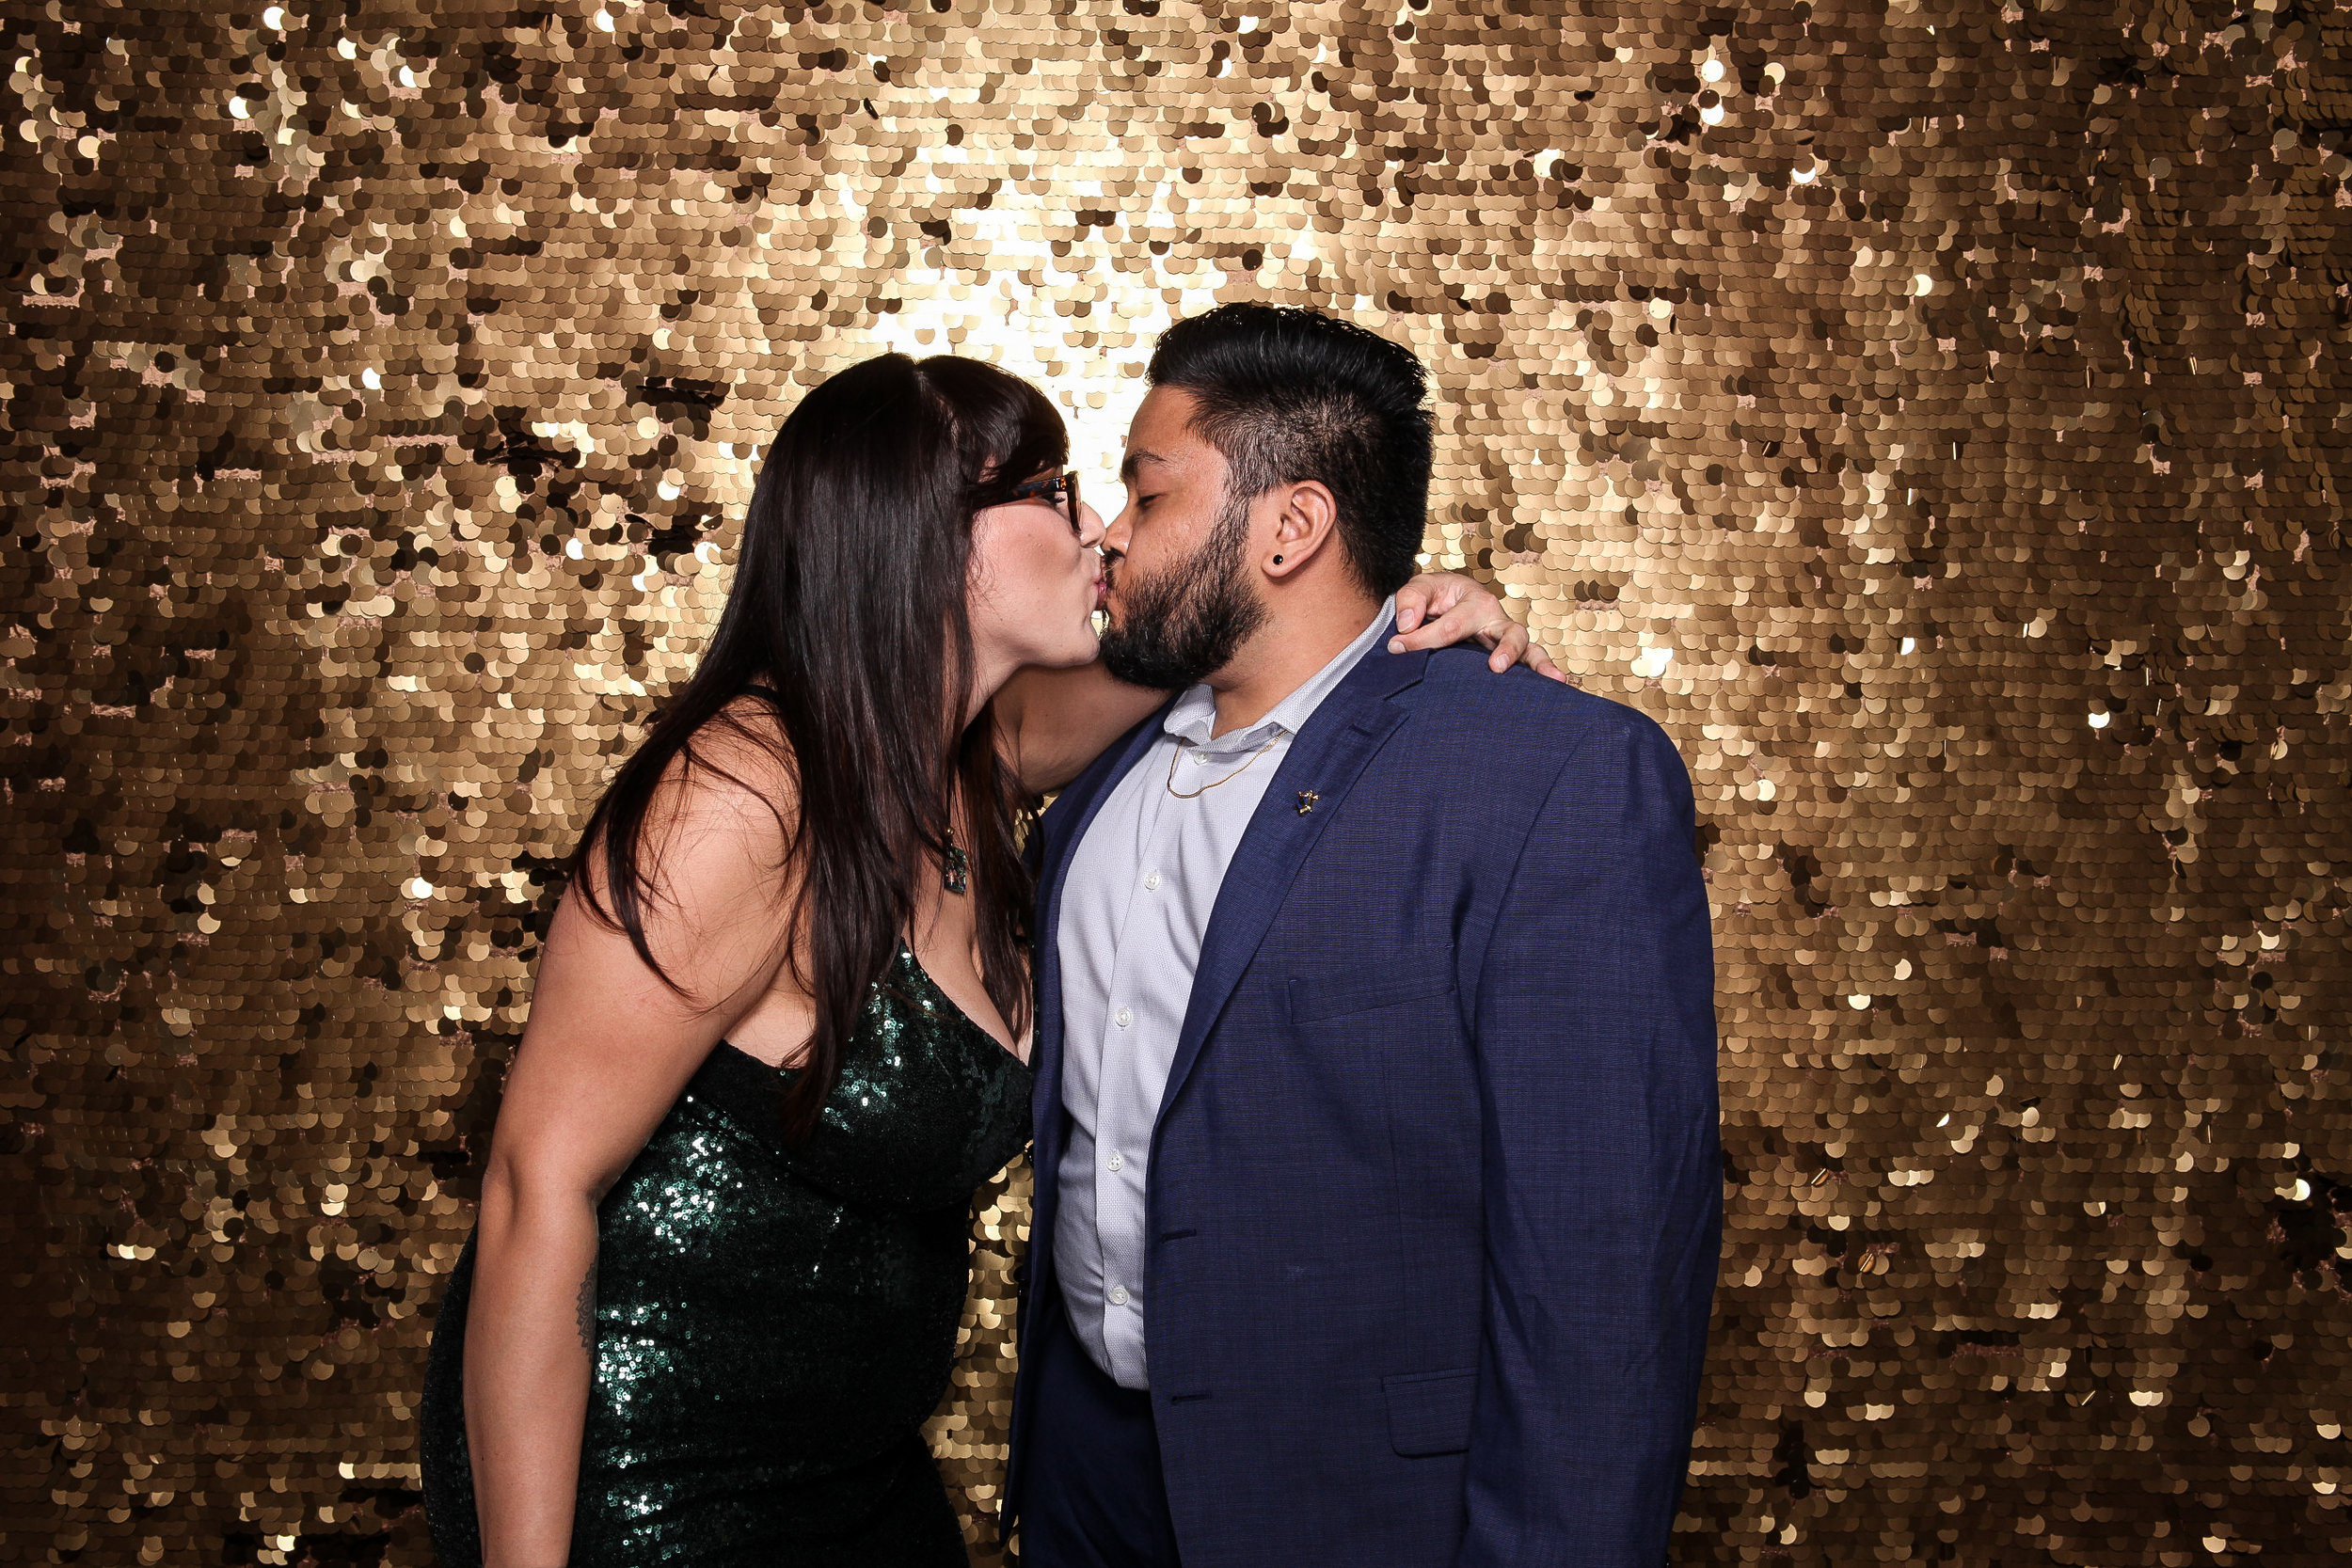 20190503_Adelphi_Senior_Formal-188.jpg